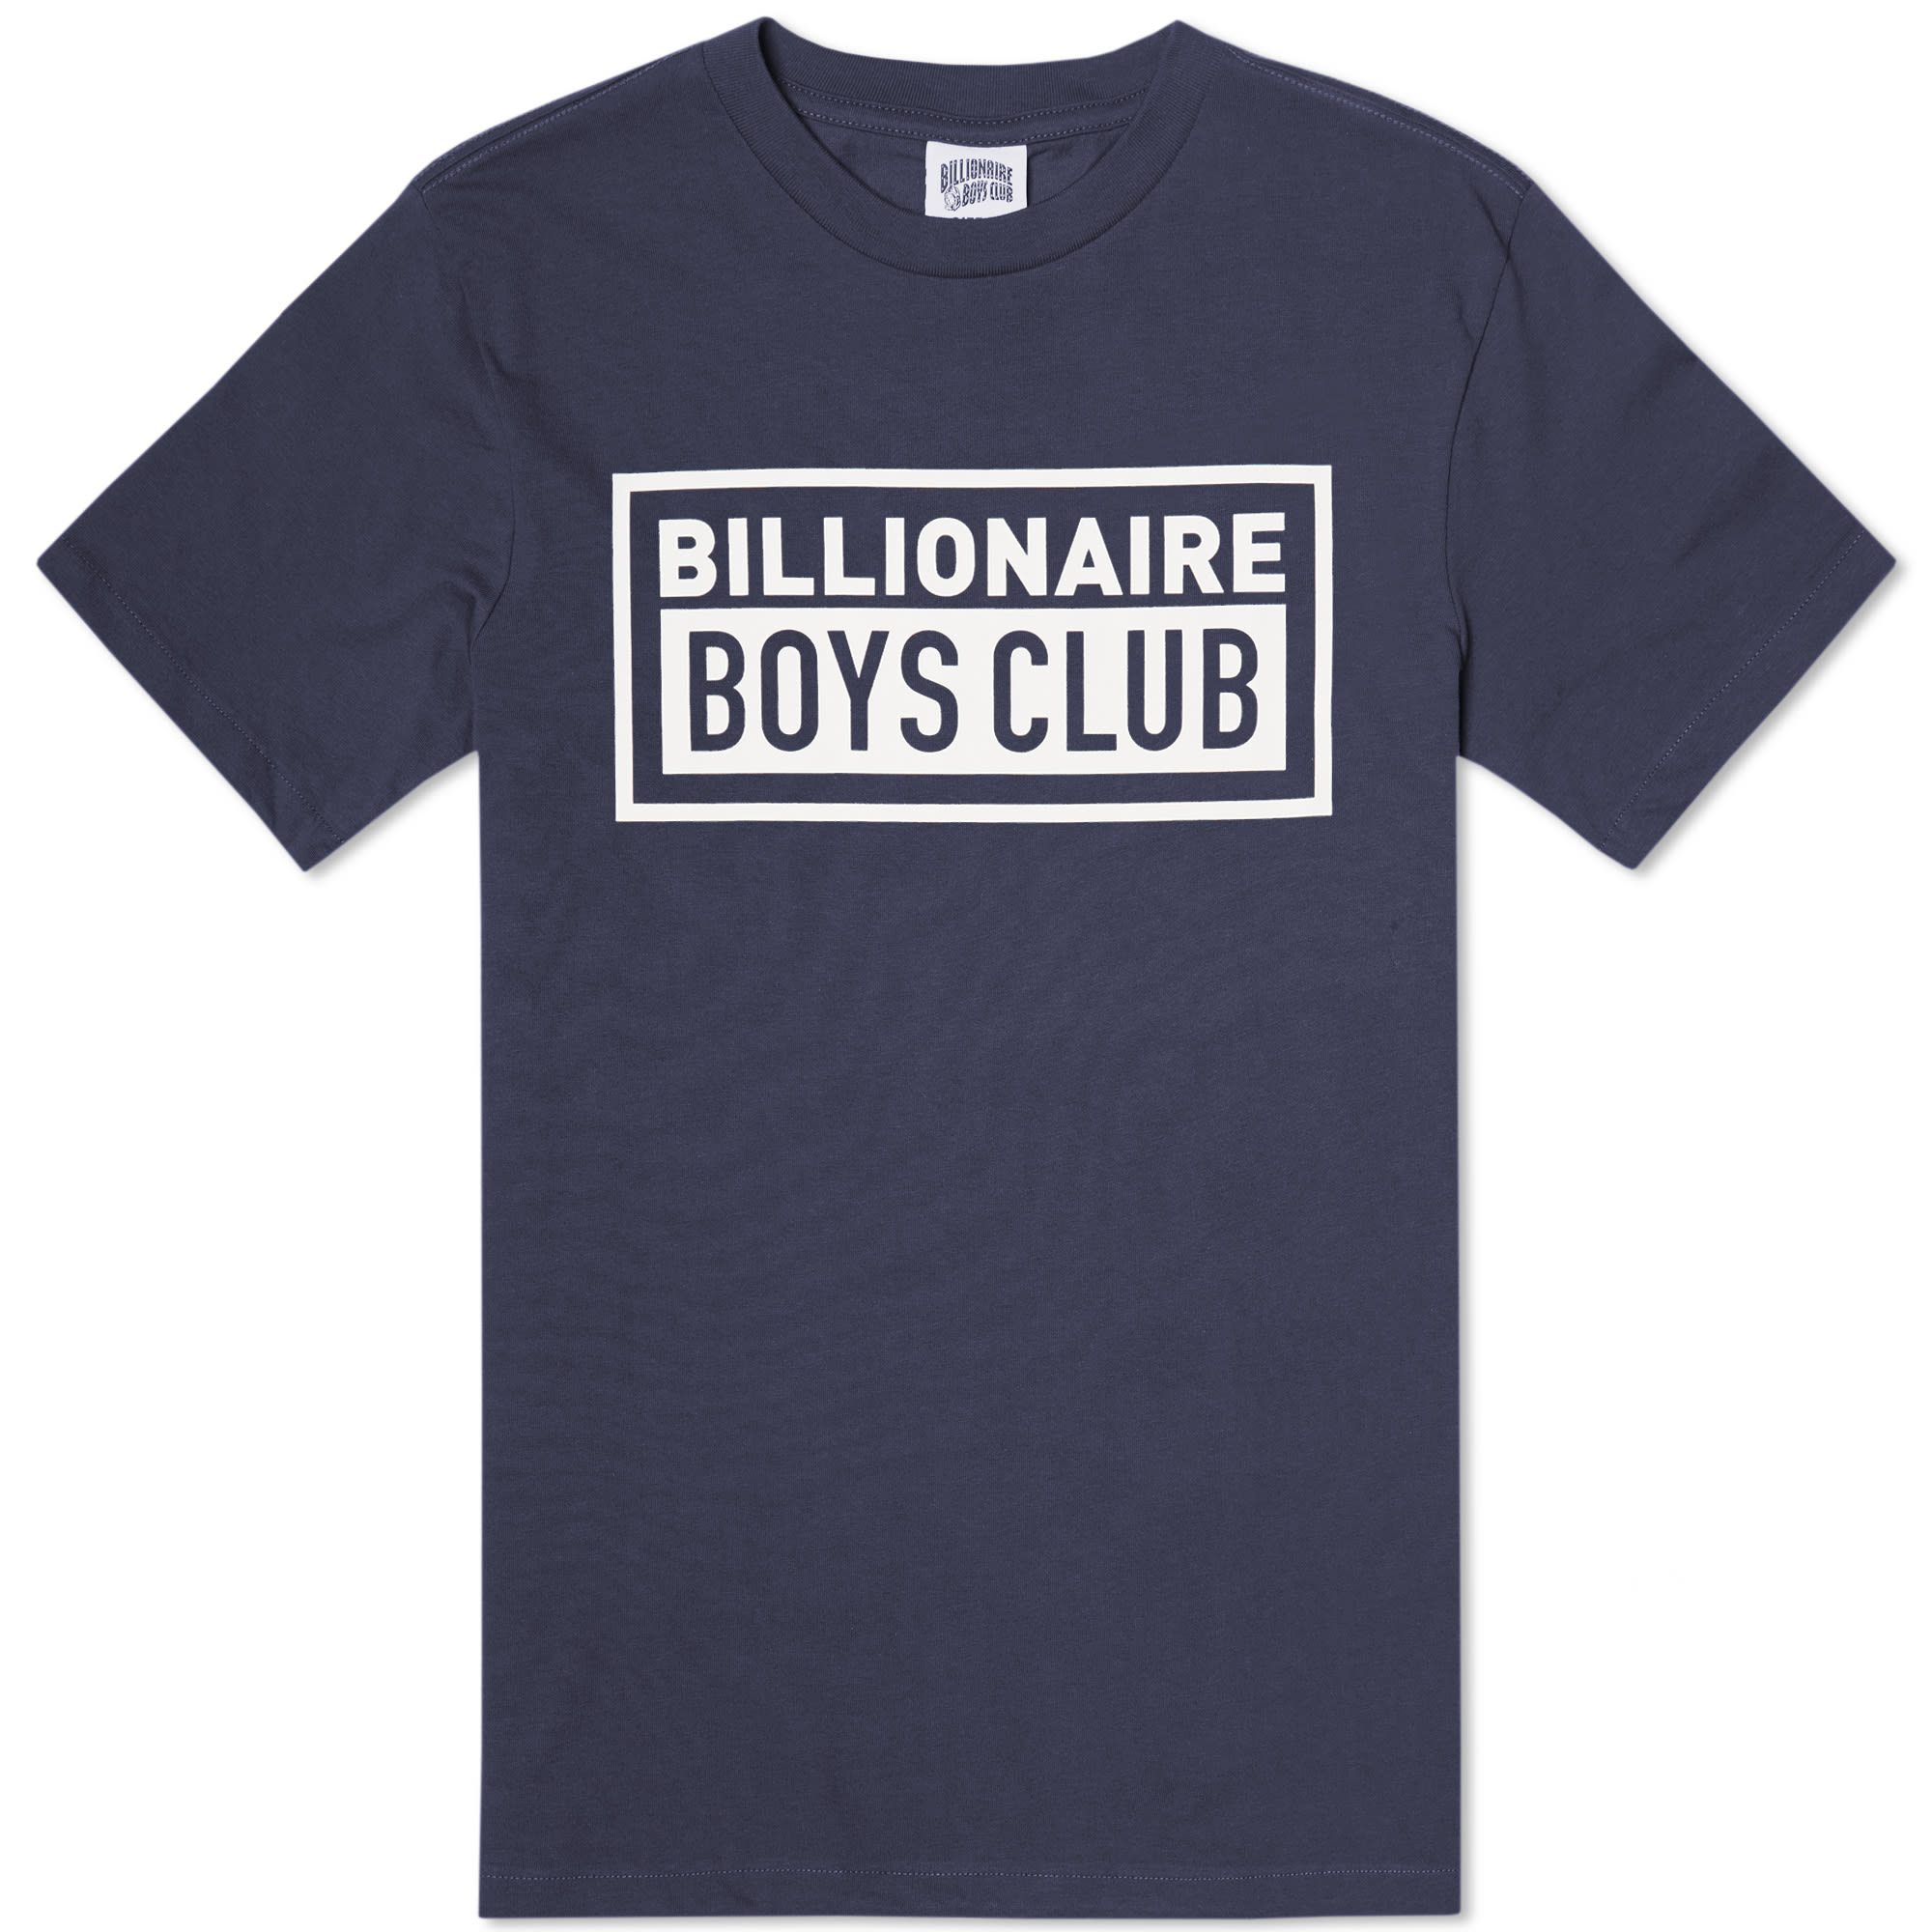 Billionaire Boys Club Billionaire Boys Club Shopping On ...